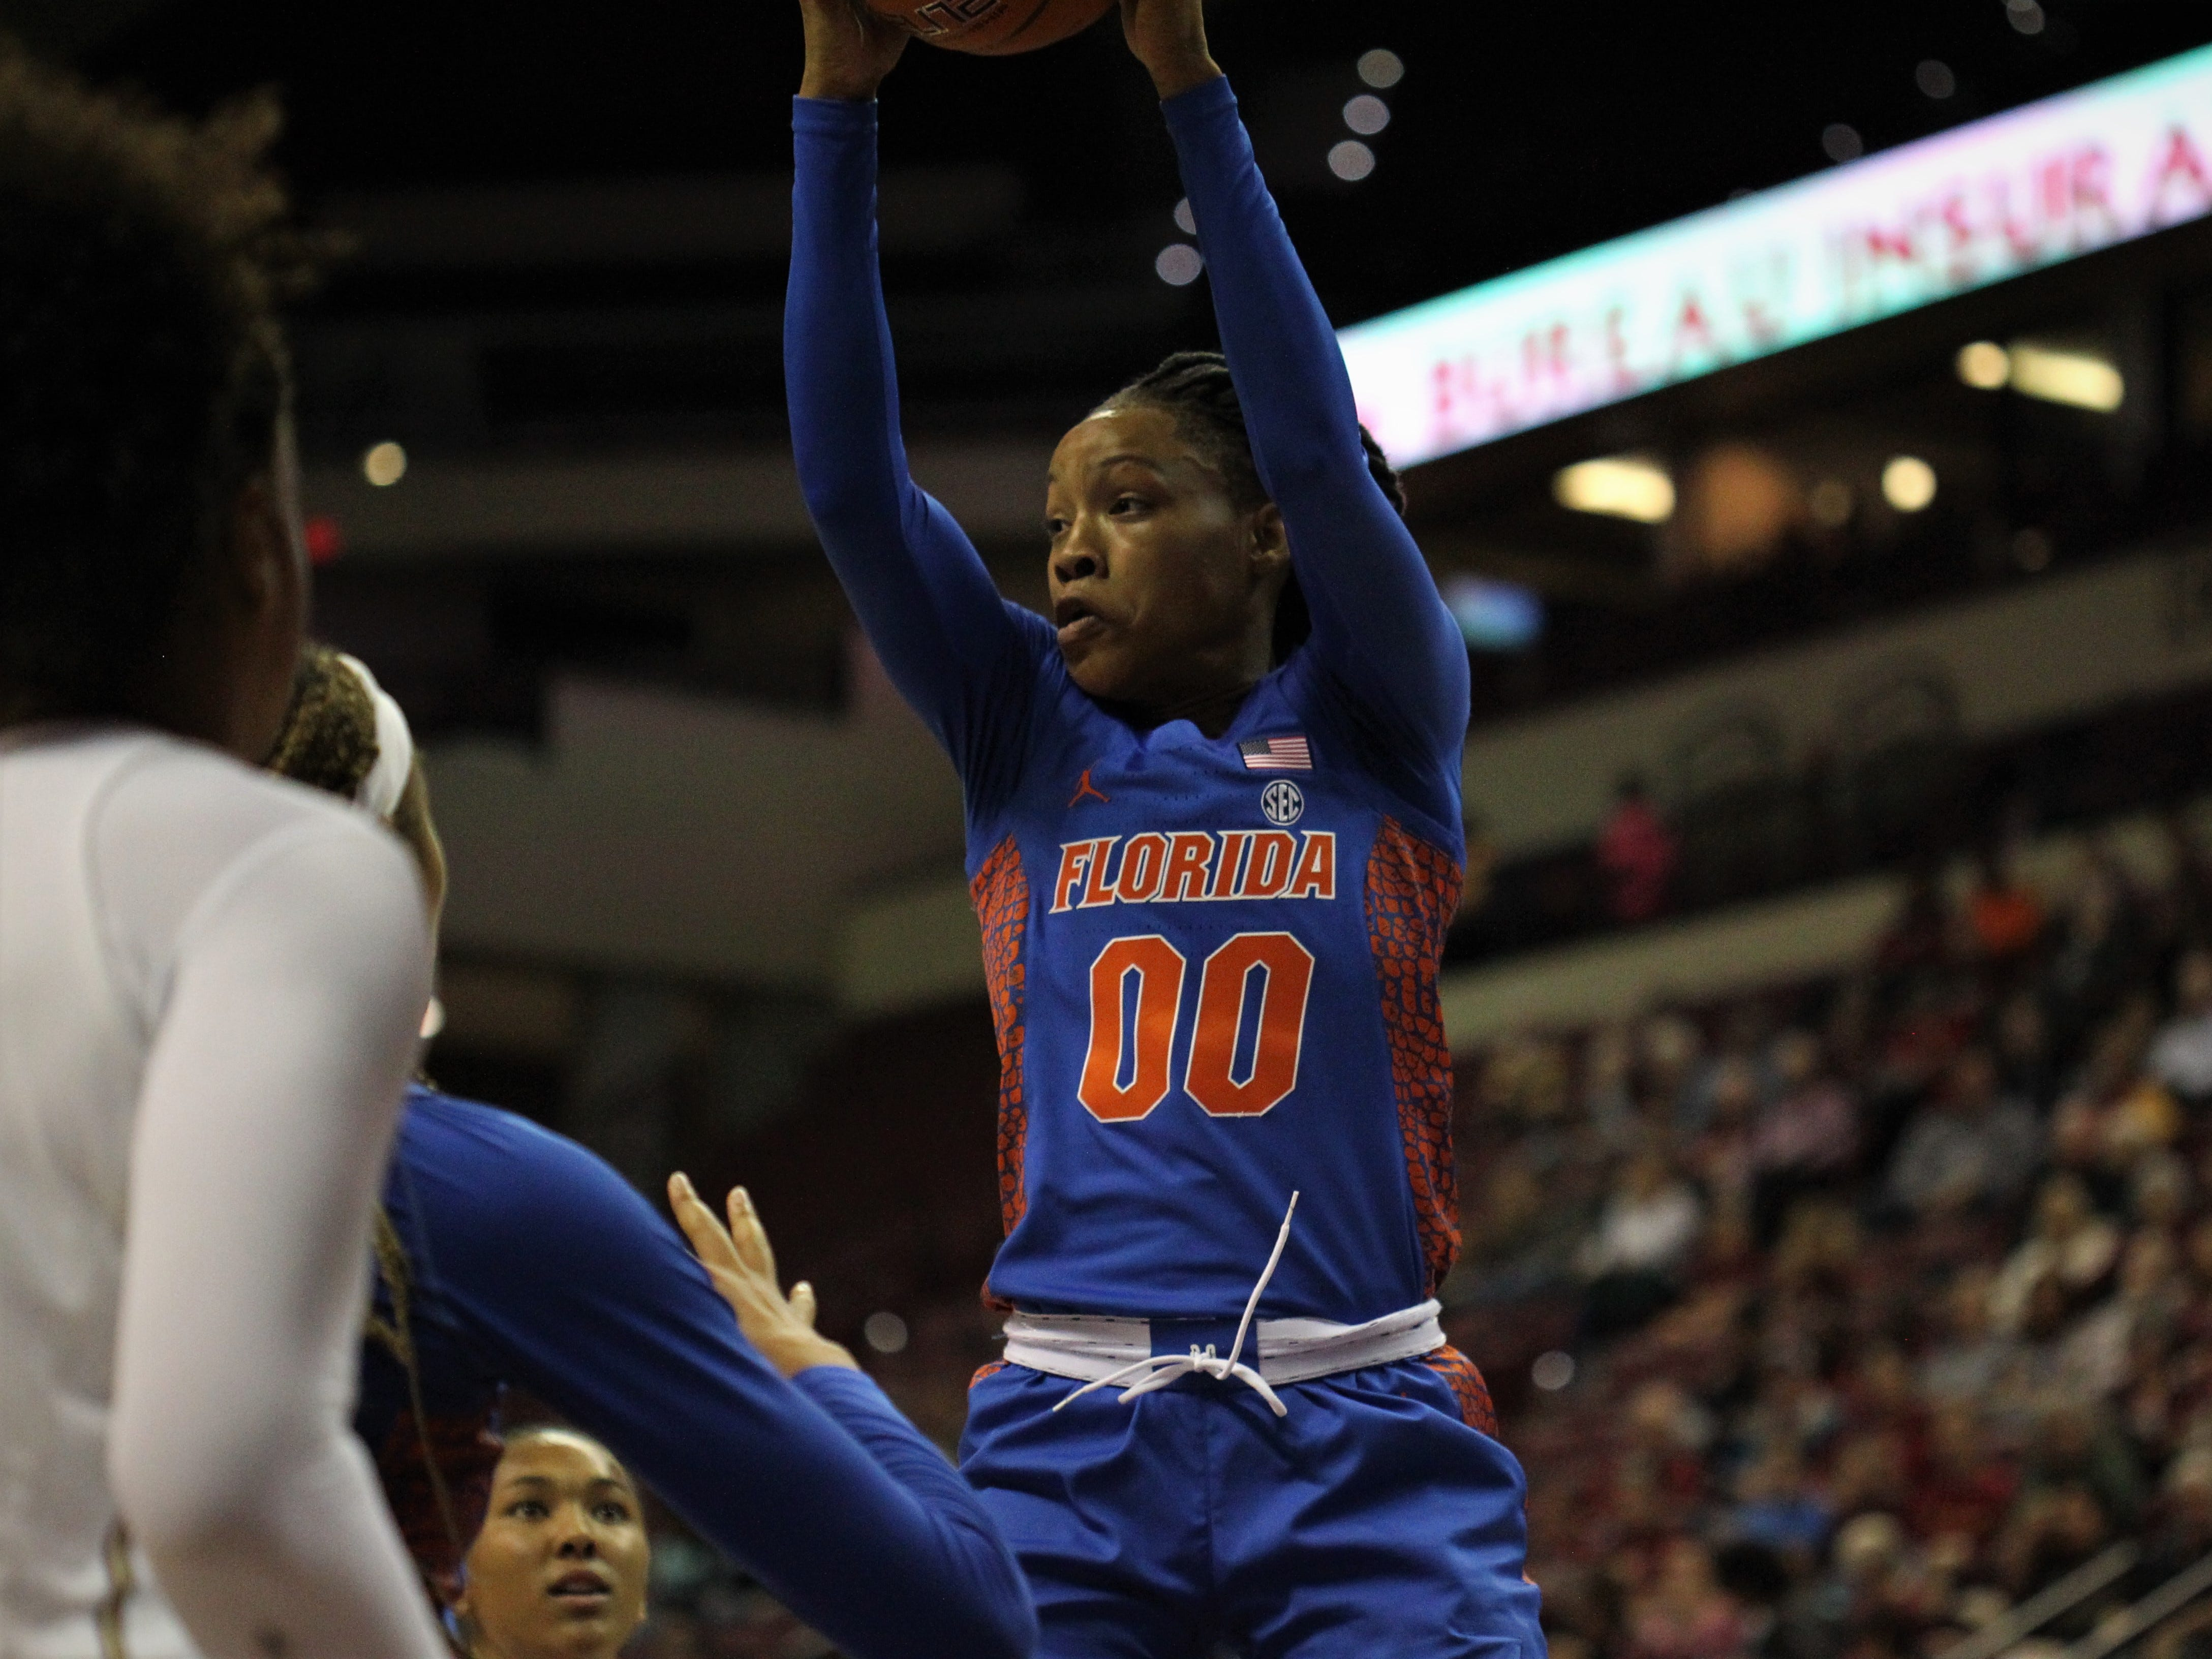 Florida's Delicia Washington grabs a rebound during the first half of a game against Florida State at the Tucker Civic Center on Nov. 11, 2018.